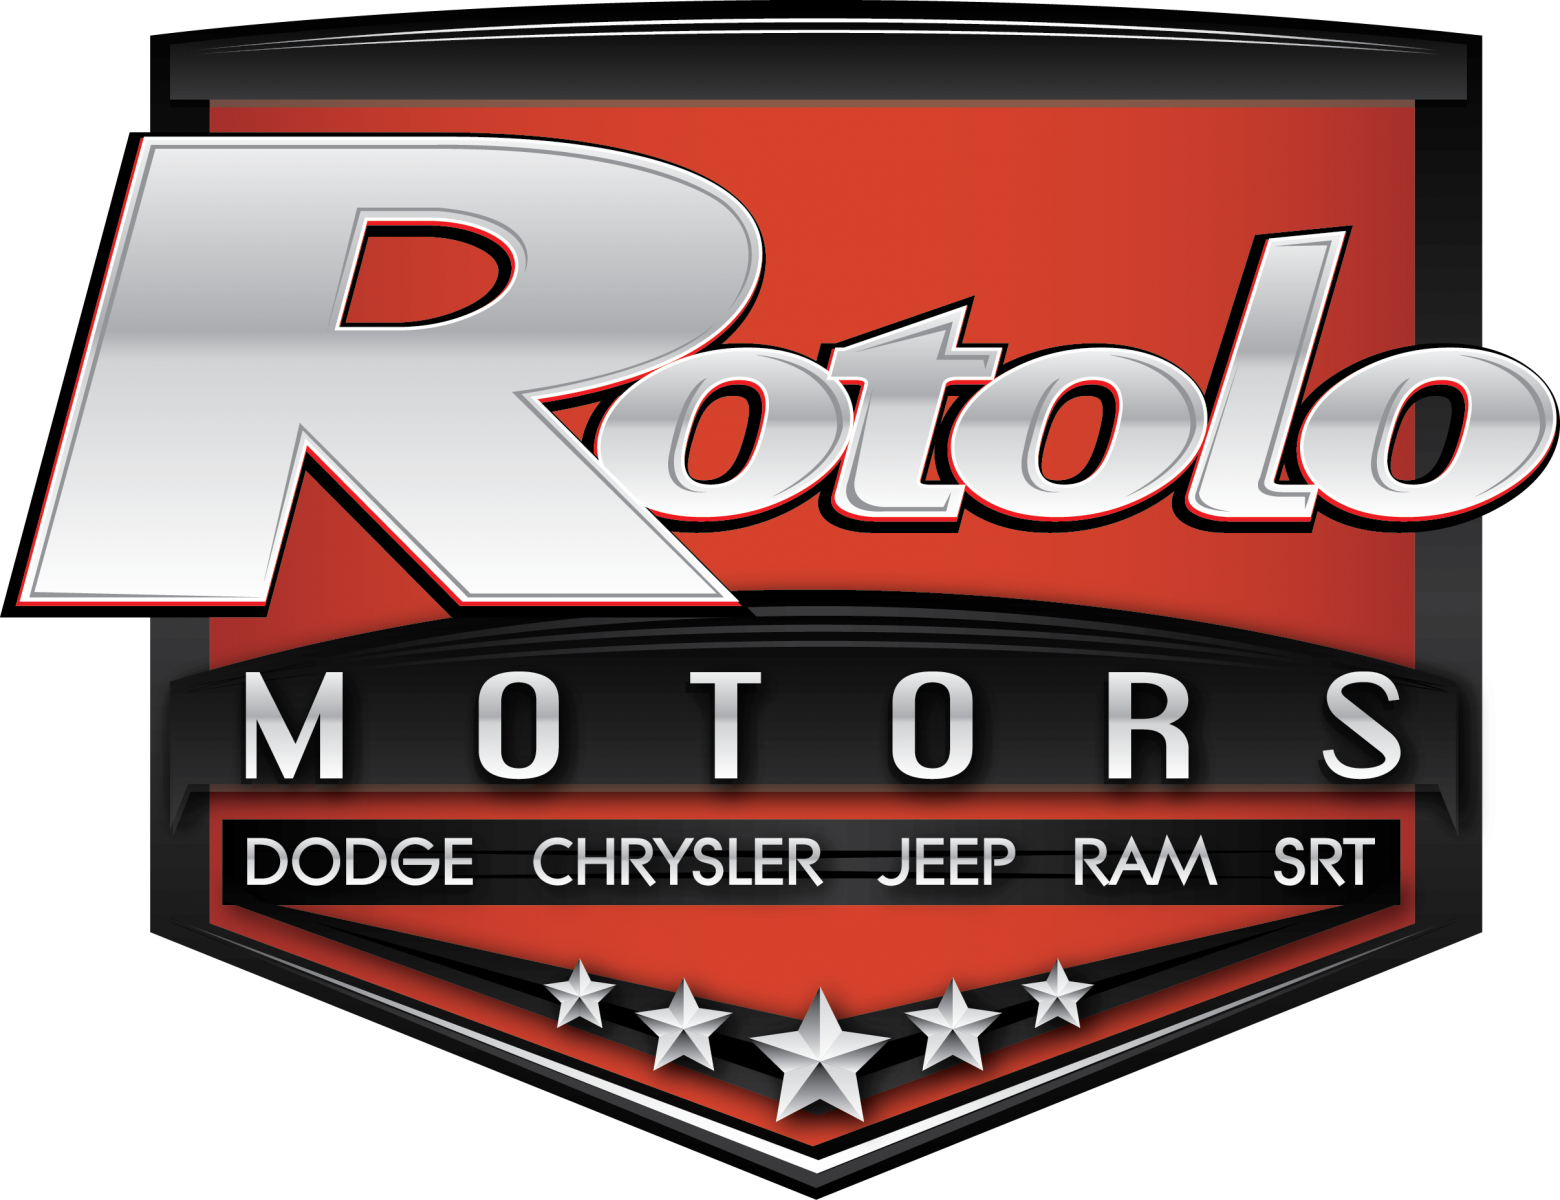 Rotolo Dodge Chrysler Jeep Ram